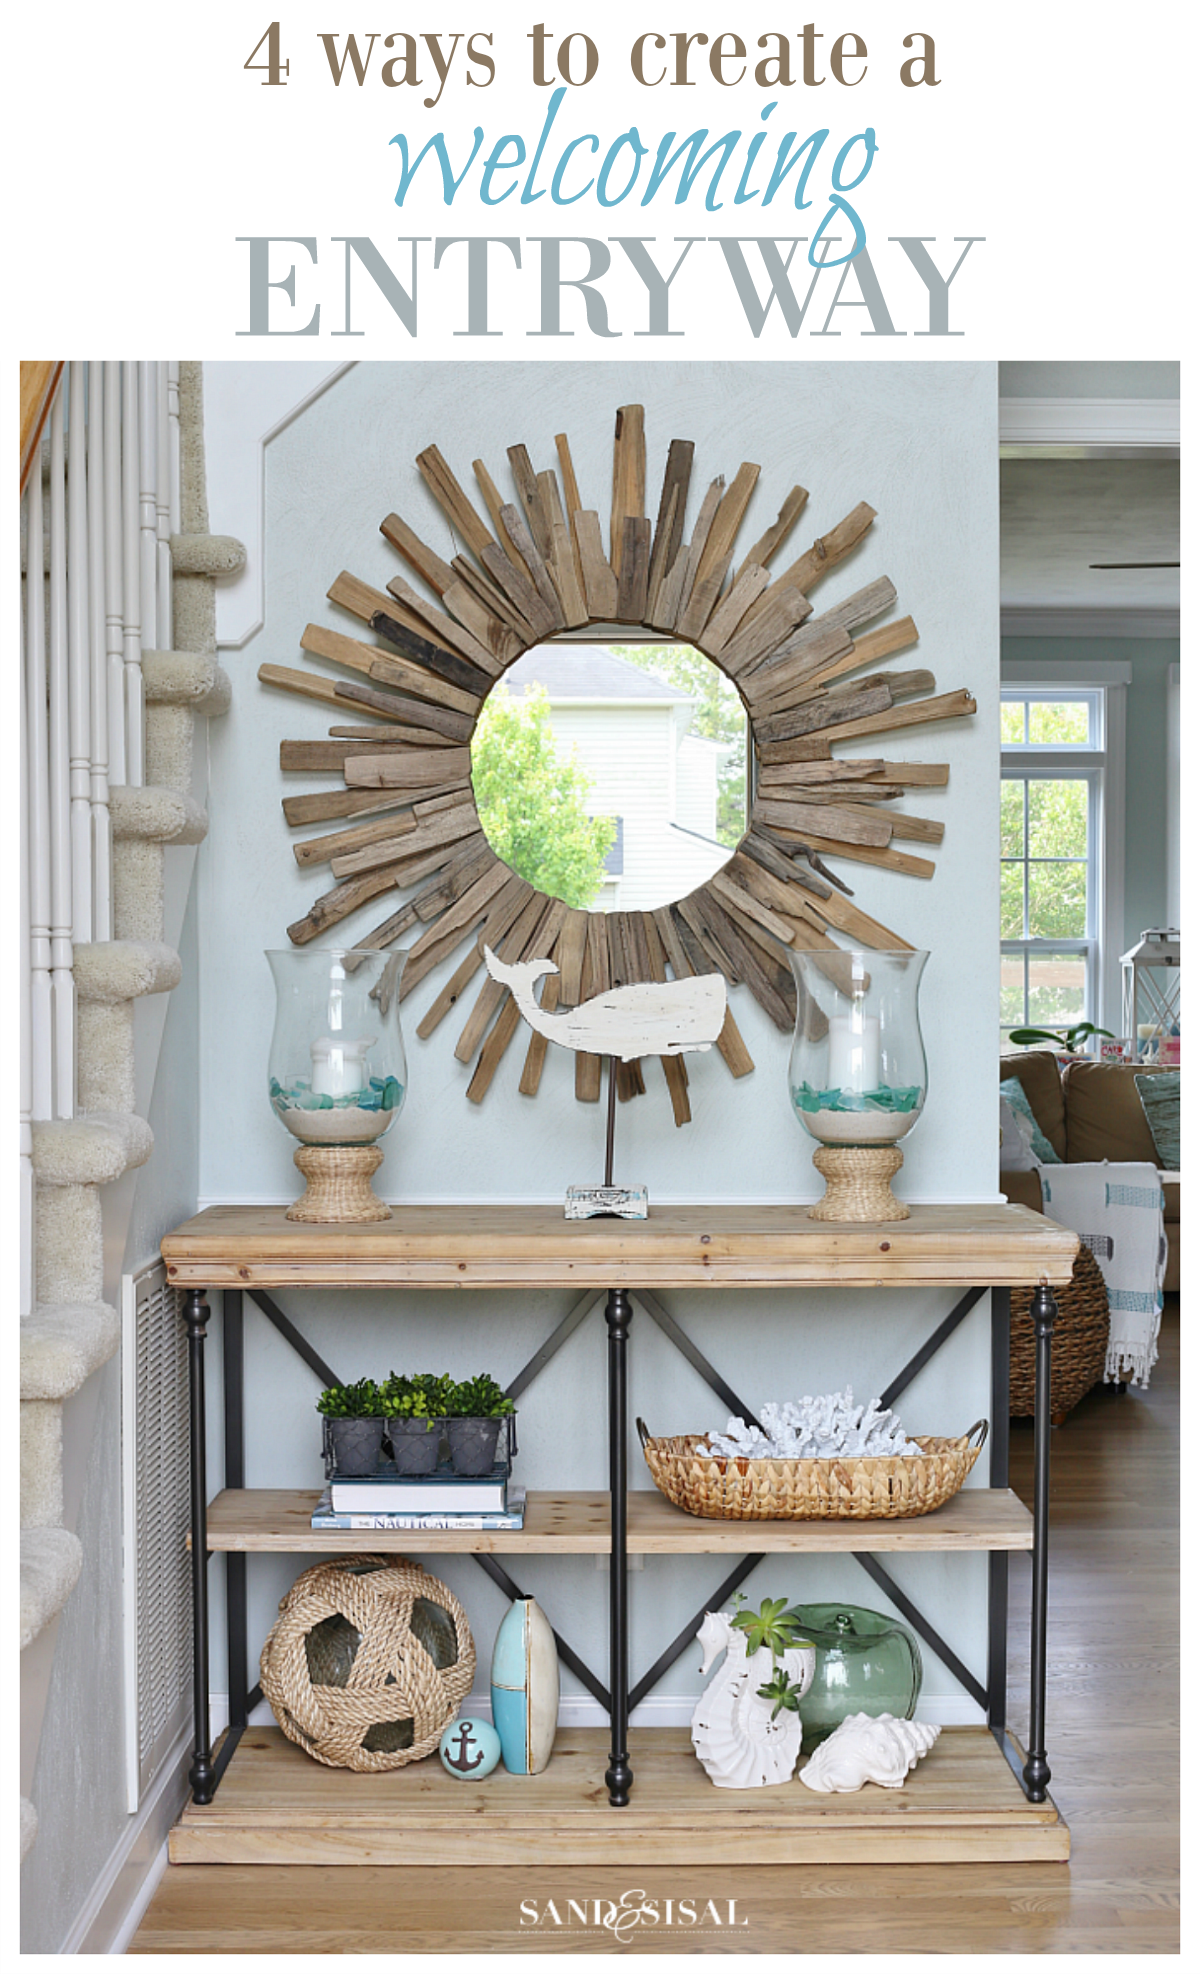 4 Ways to Create a Welcoming Entryway - Pin